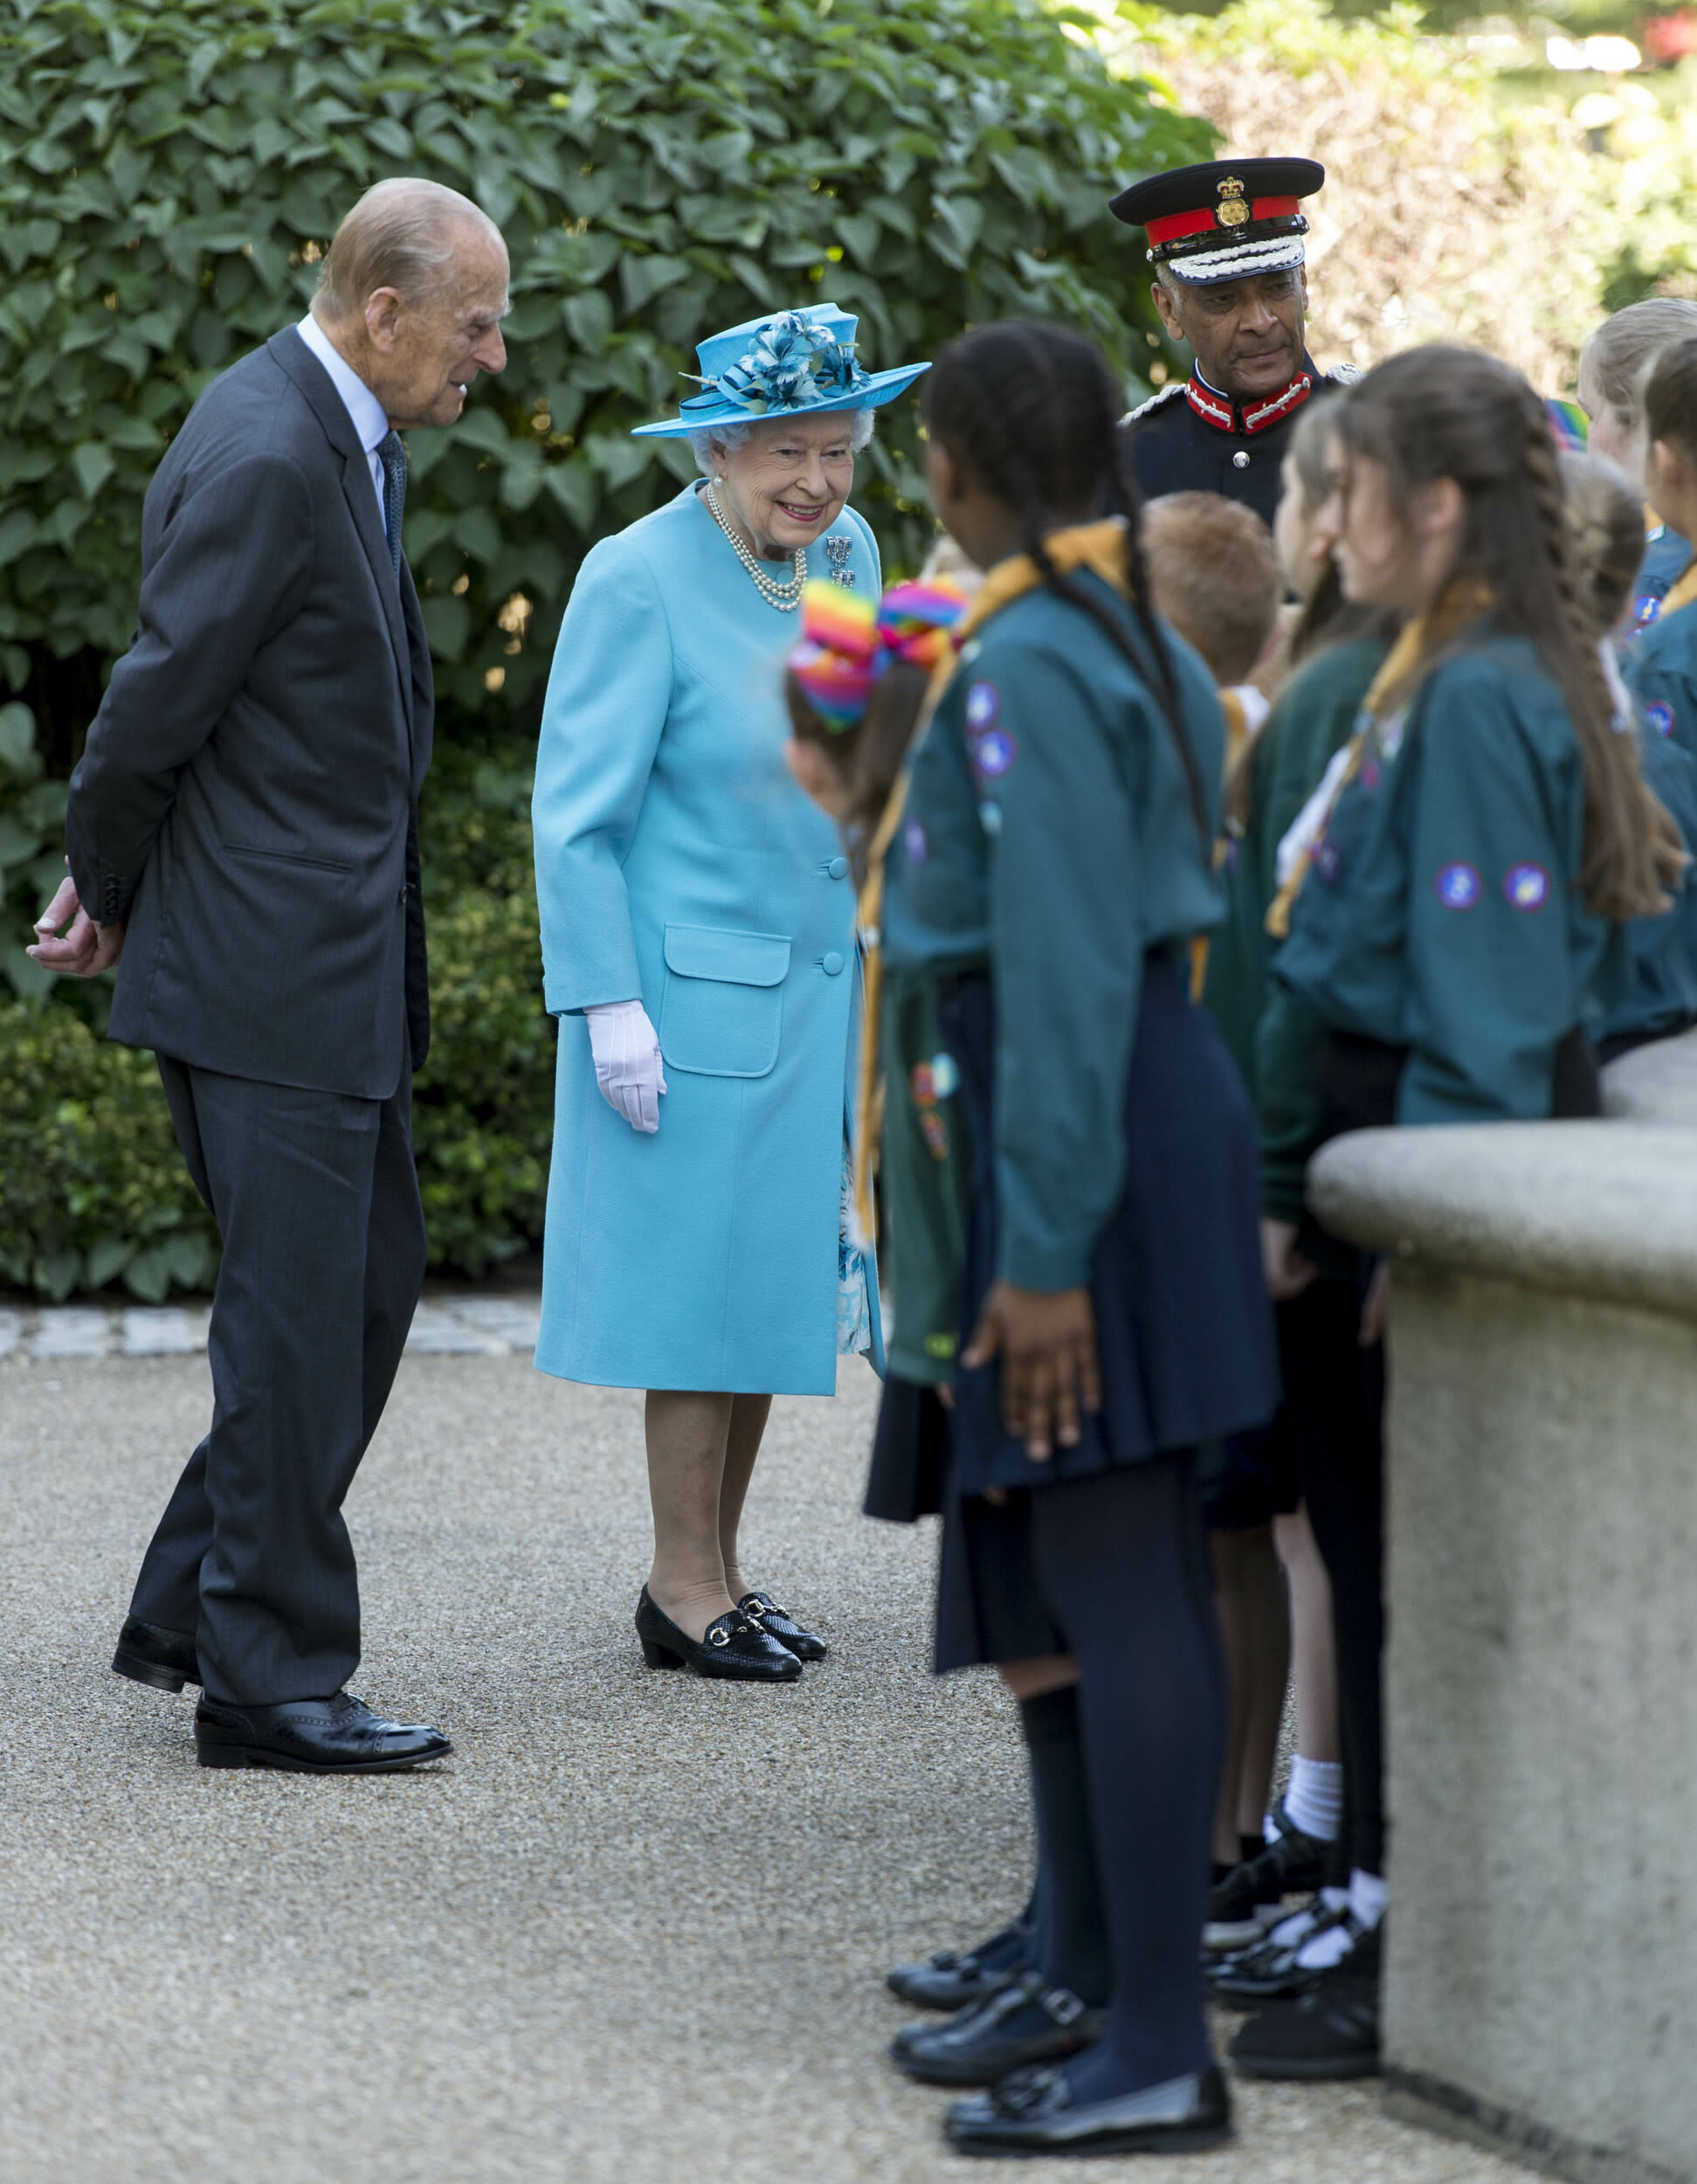 Photo by: KGC-178/STAR MAX/IPx 2017 6/15/17 Queen Elizabeth II and Prince Philip, Duke of Edinburgh attend a Memorial Service at All Saints Church during an official visit to Tower Hamlets in London, England.